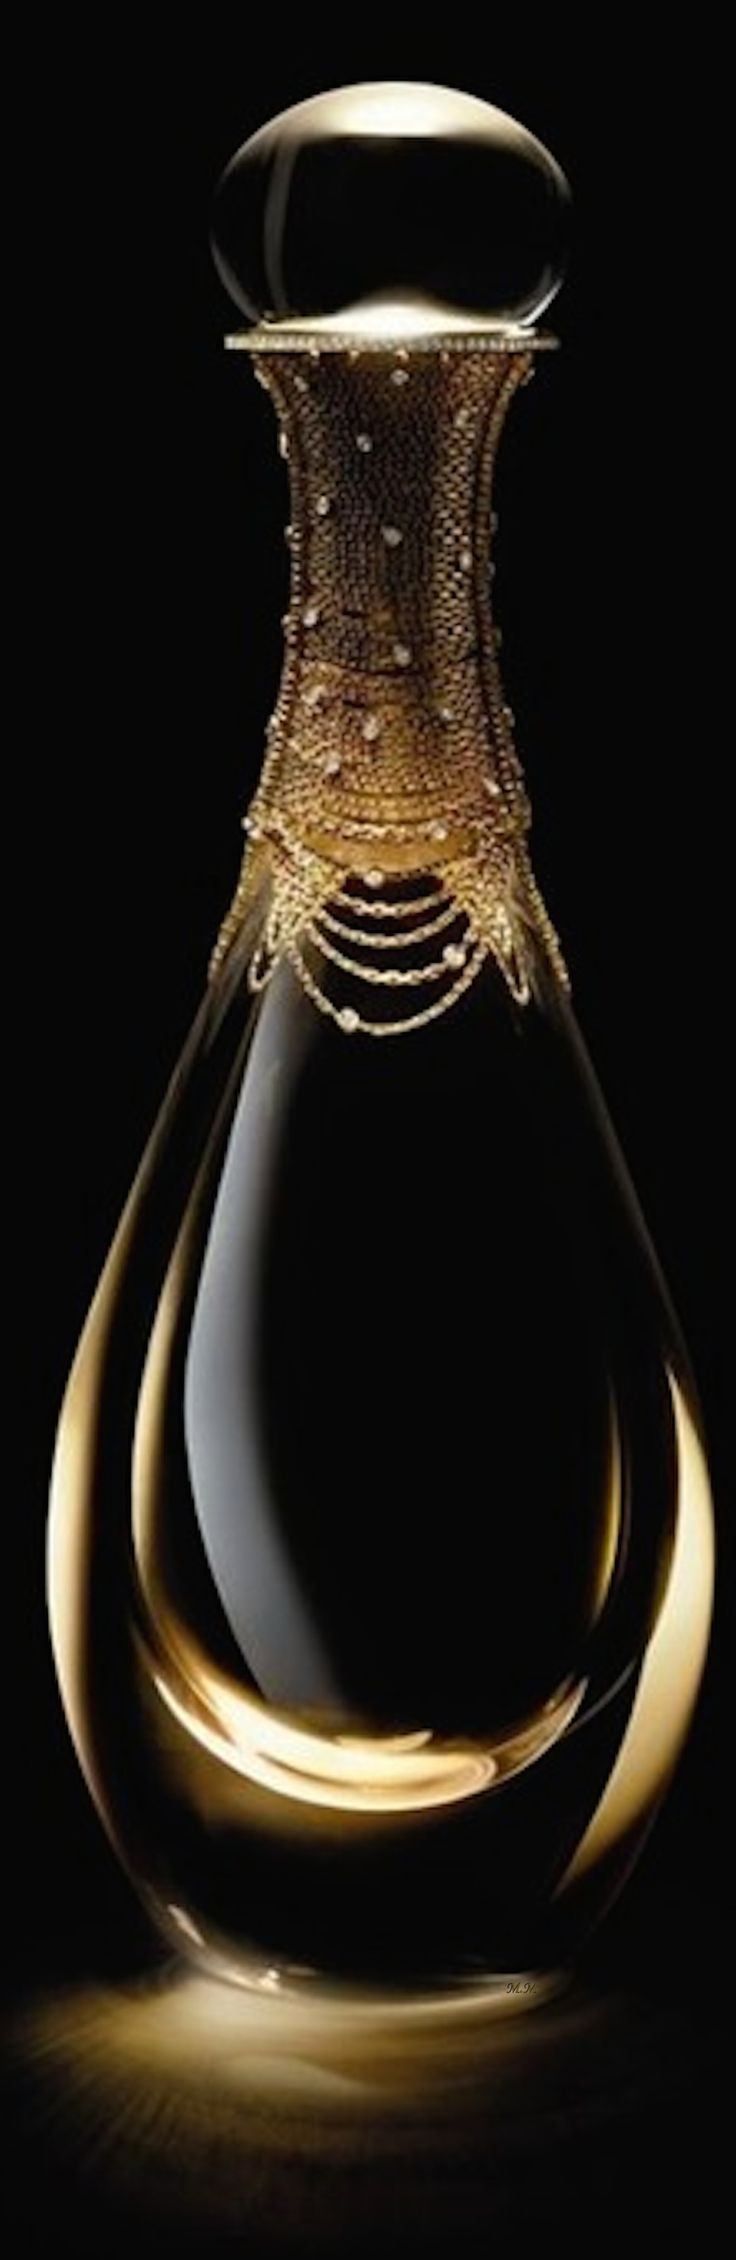 Dior-J'adore-l'or-Haute-Joaillerie-140000 y-Edition-Fragrance